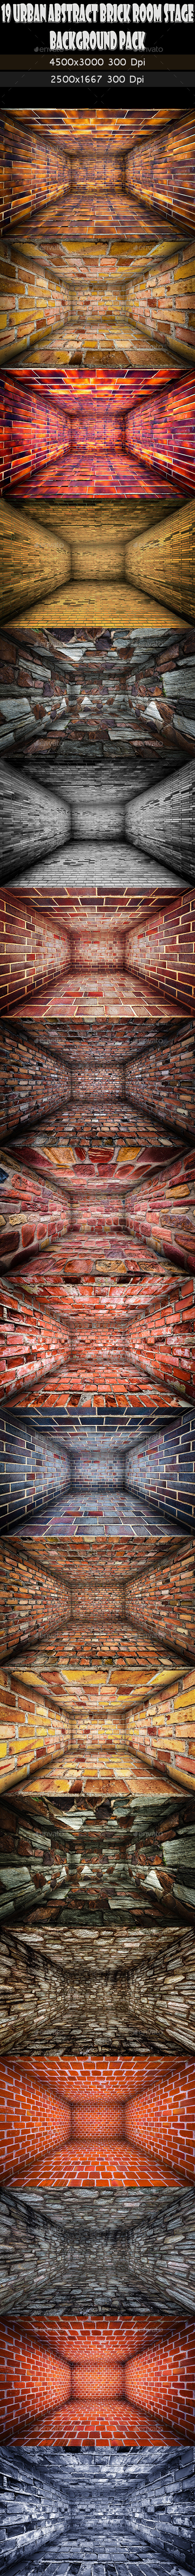 GraphicRiver 19 Abstract Urban Brick Room Interior Stage Pack 11759715